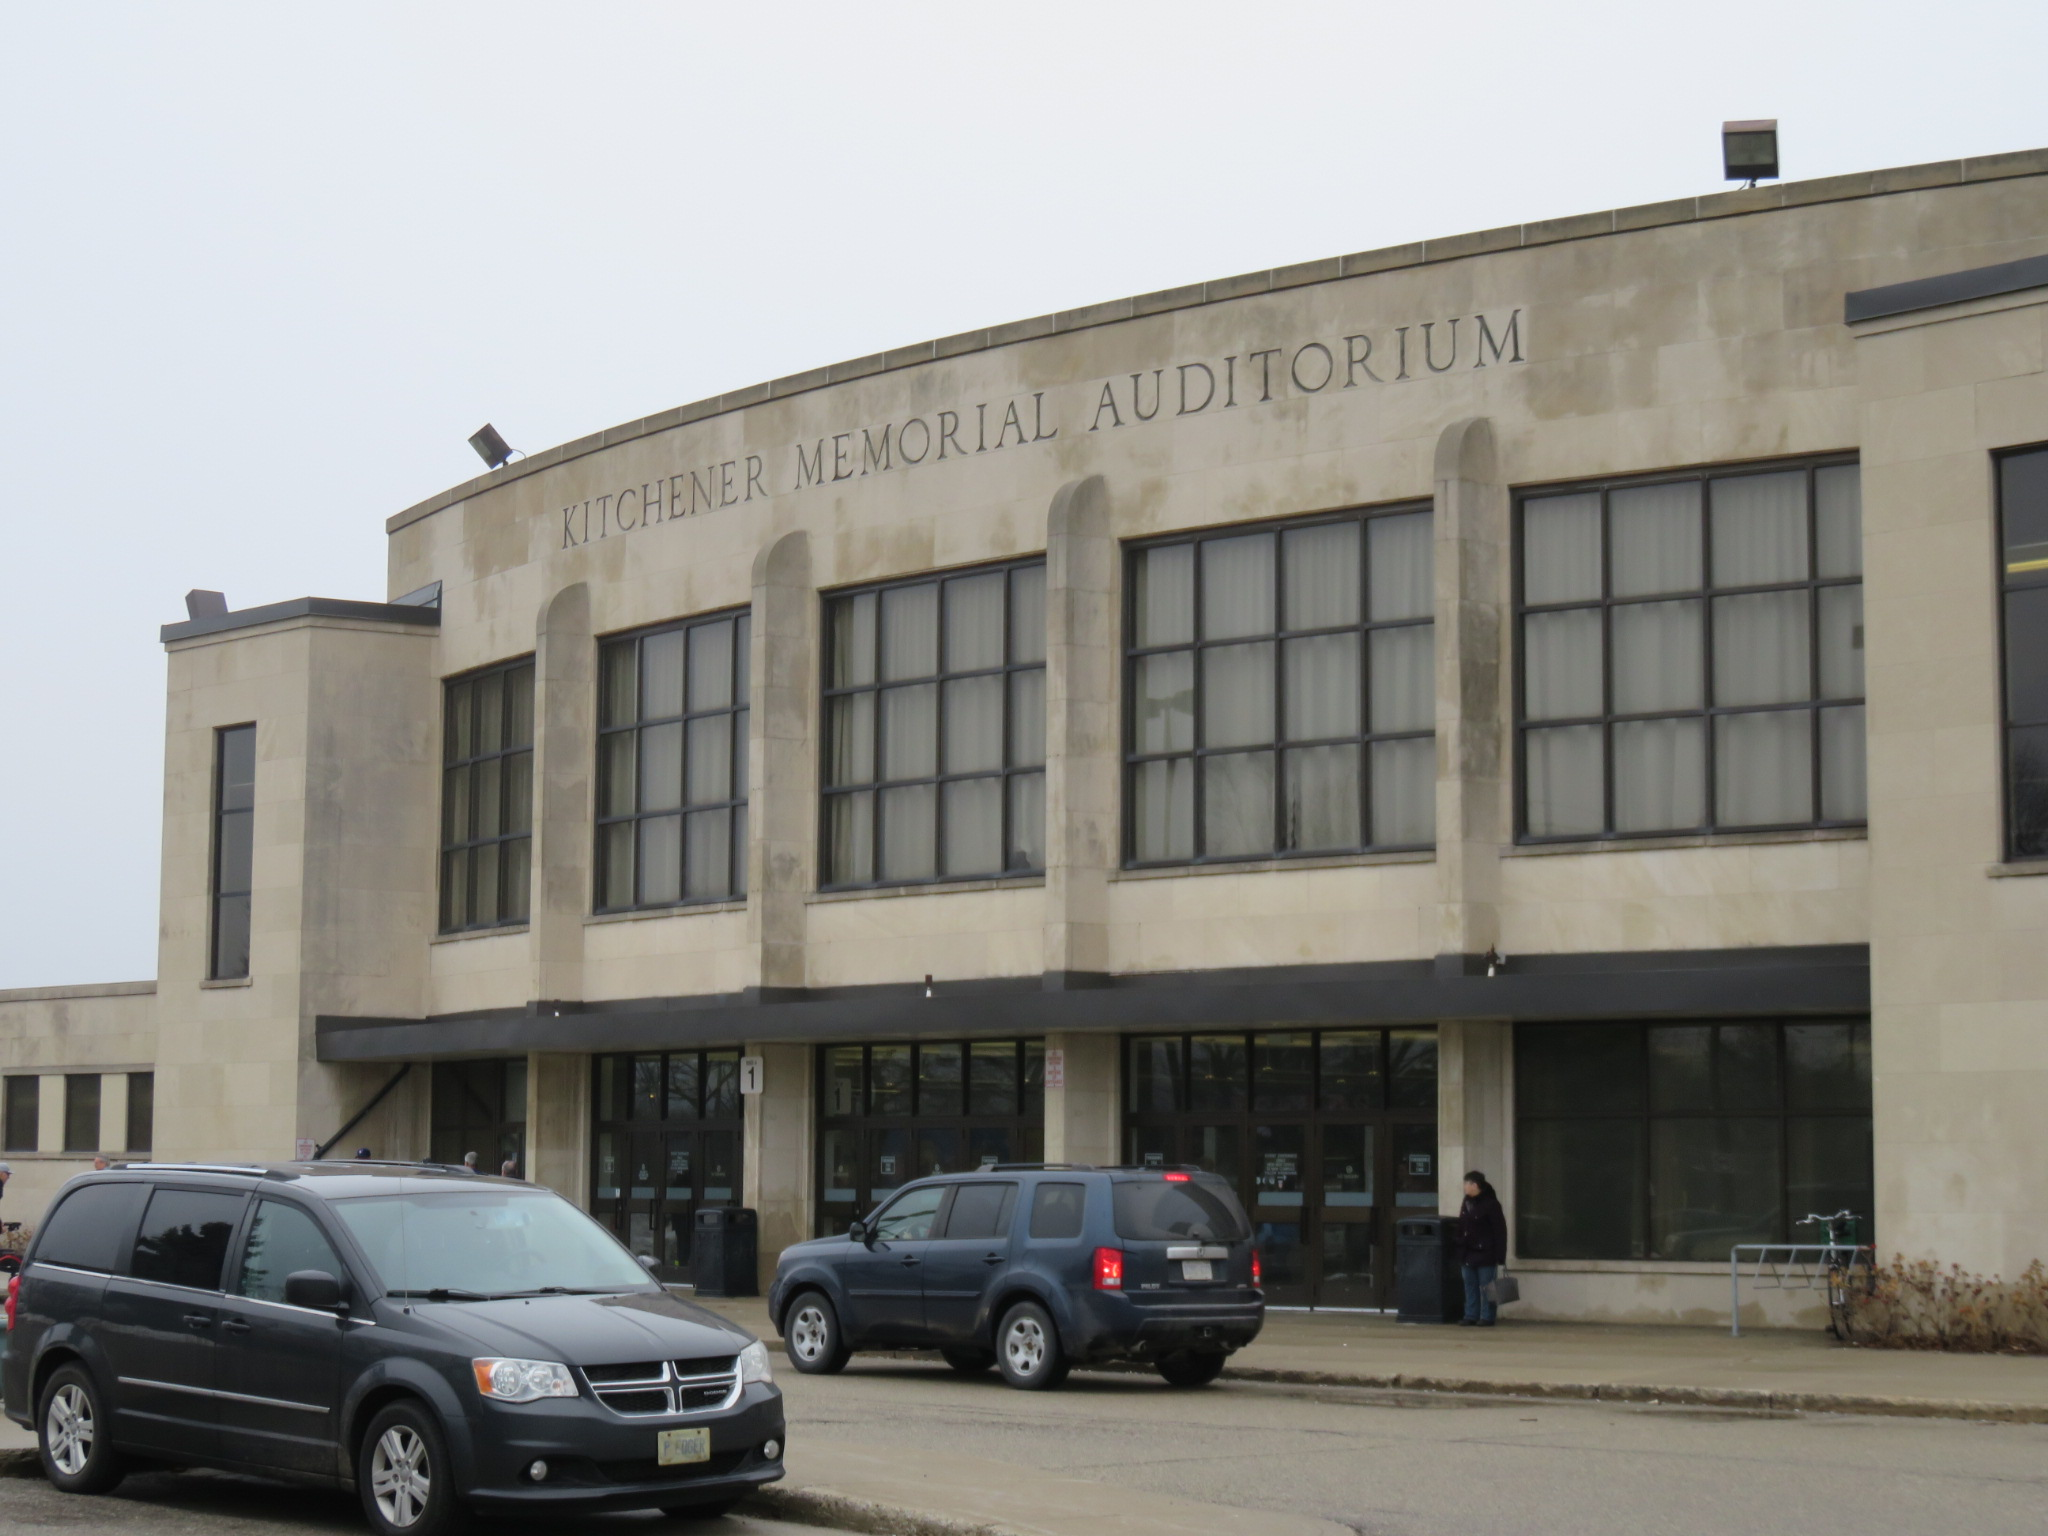 Dom Cardillo Arena At The Kitchener Memorial Auditorium